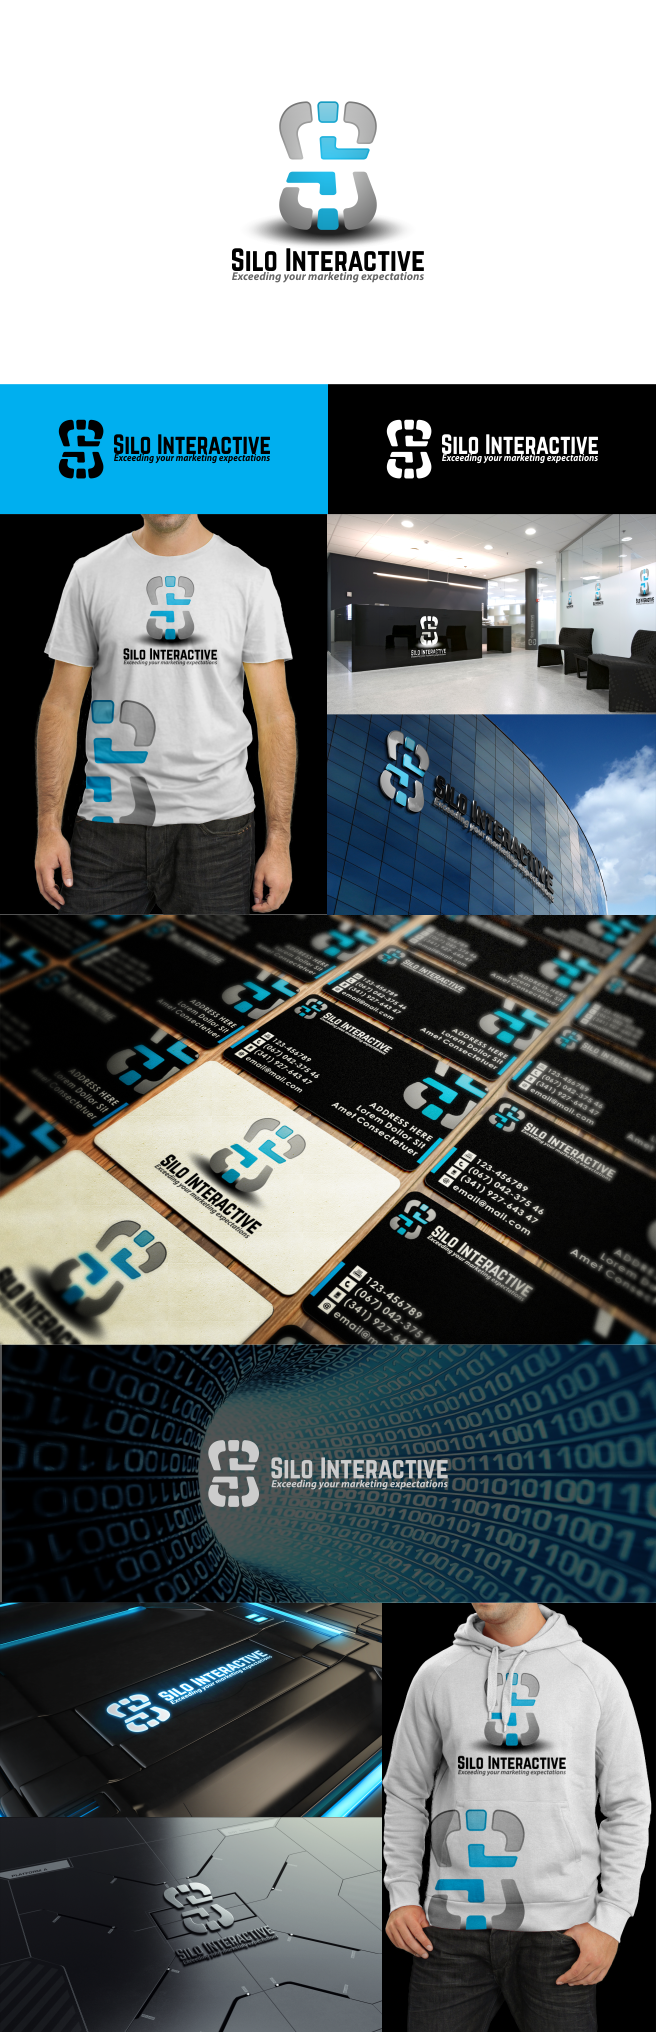 Silo Interactive Media Company Logo and Extras Design Project - EASYYYY